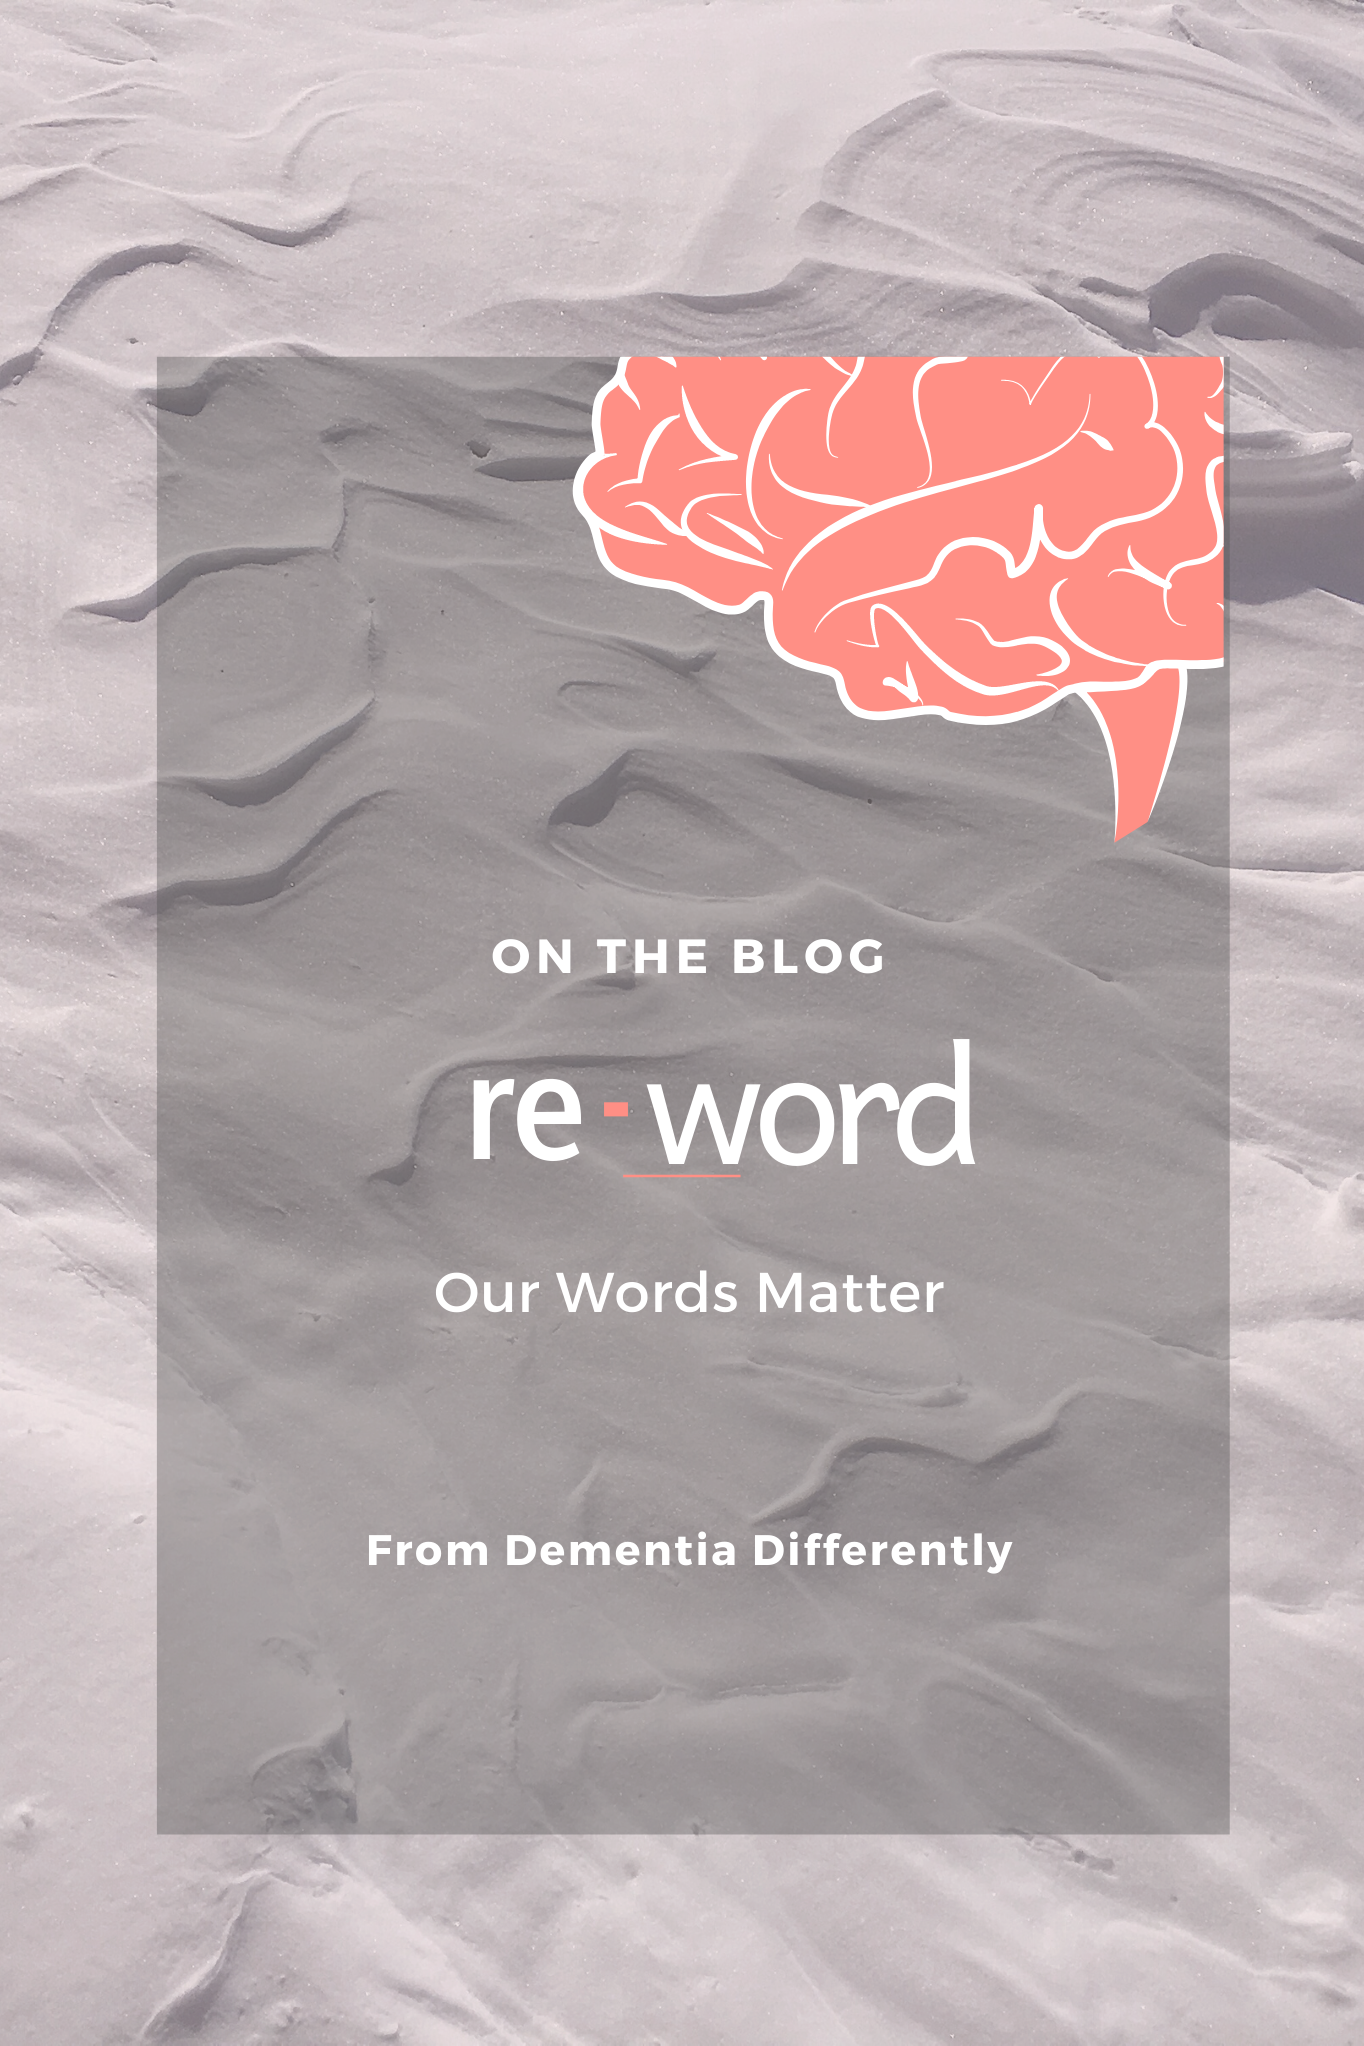 re-word: Our Words Matter blog post